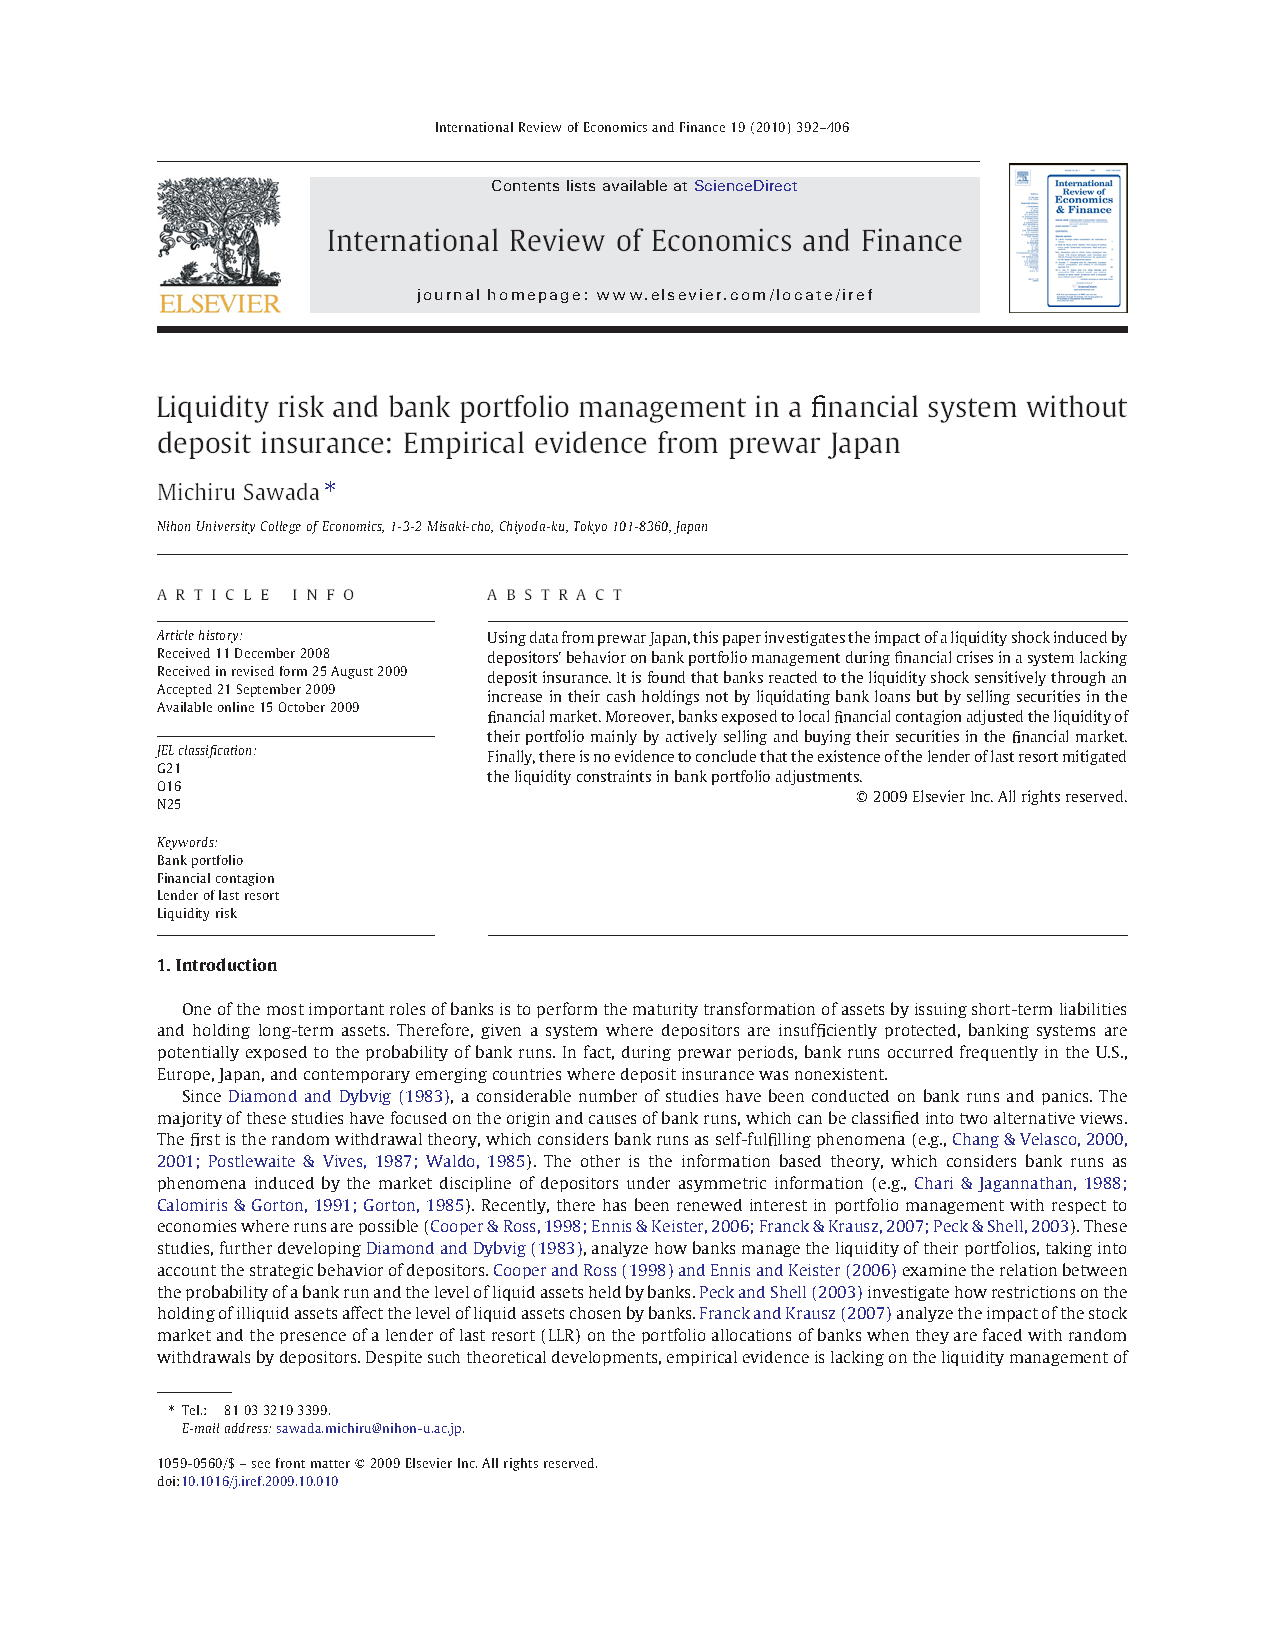 Liquidity risk and bank portfolio management in a financial system without